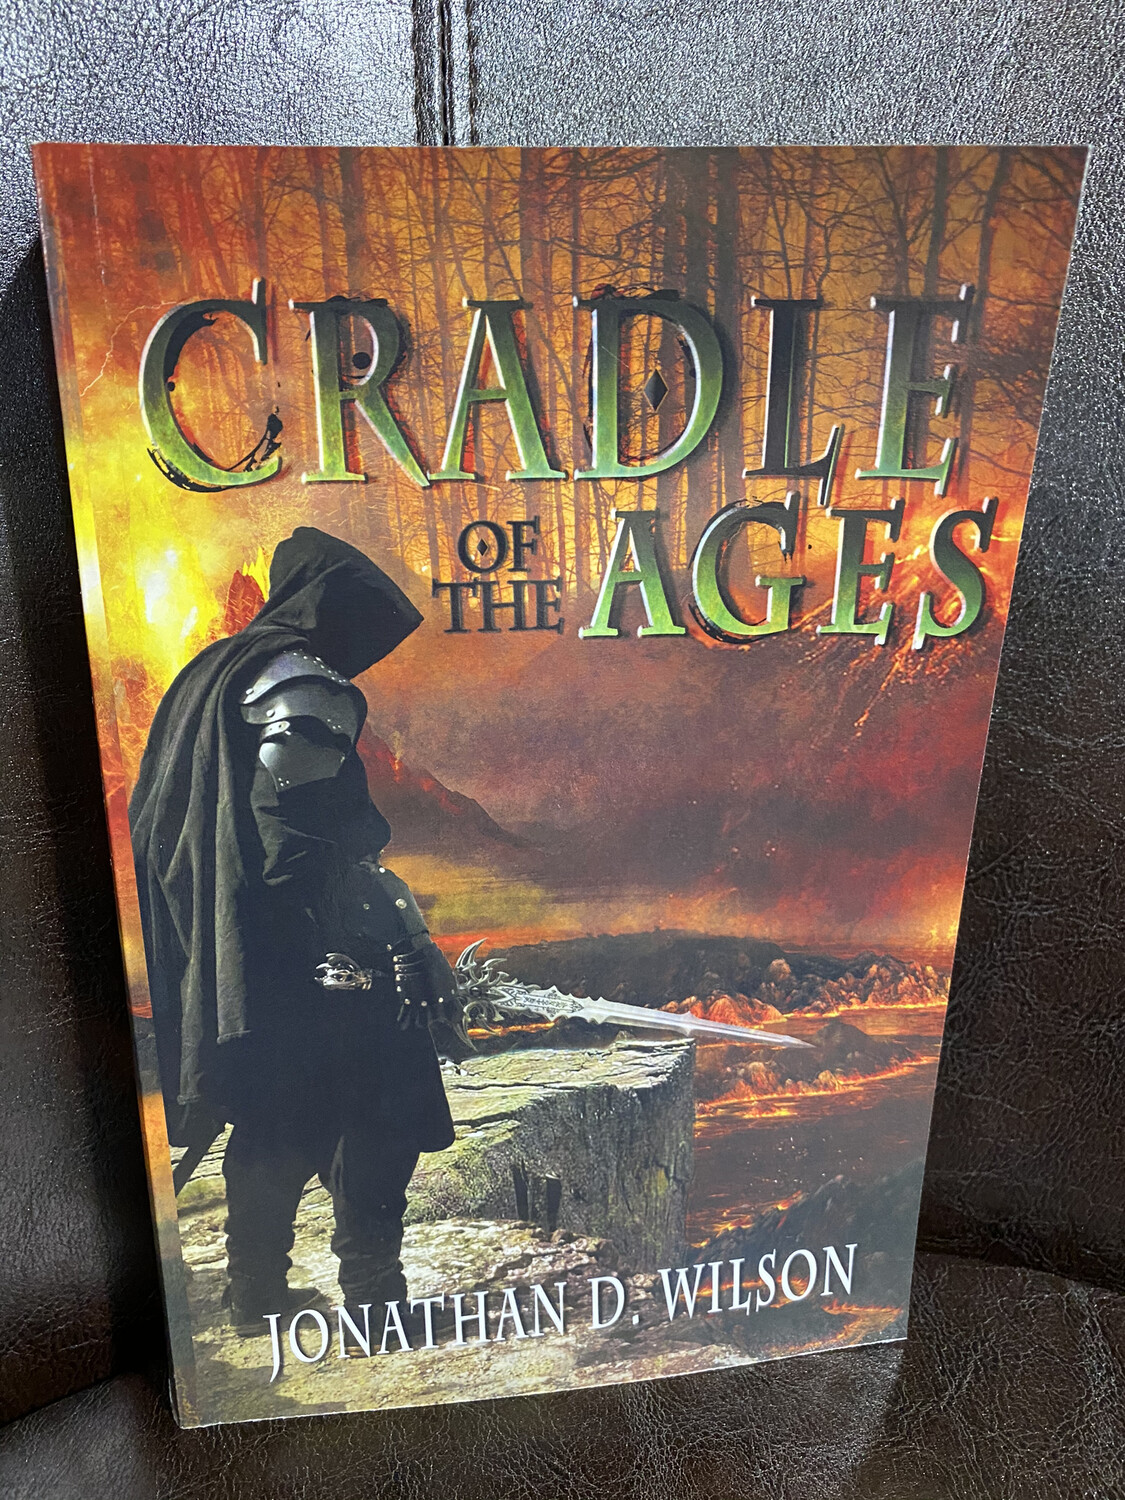 WILSON, Cradle Of The Ages (Endurance Press)